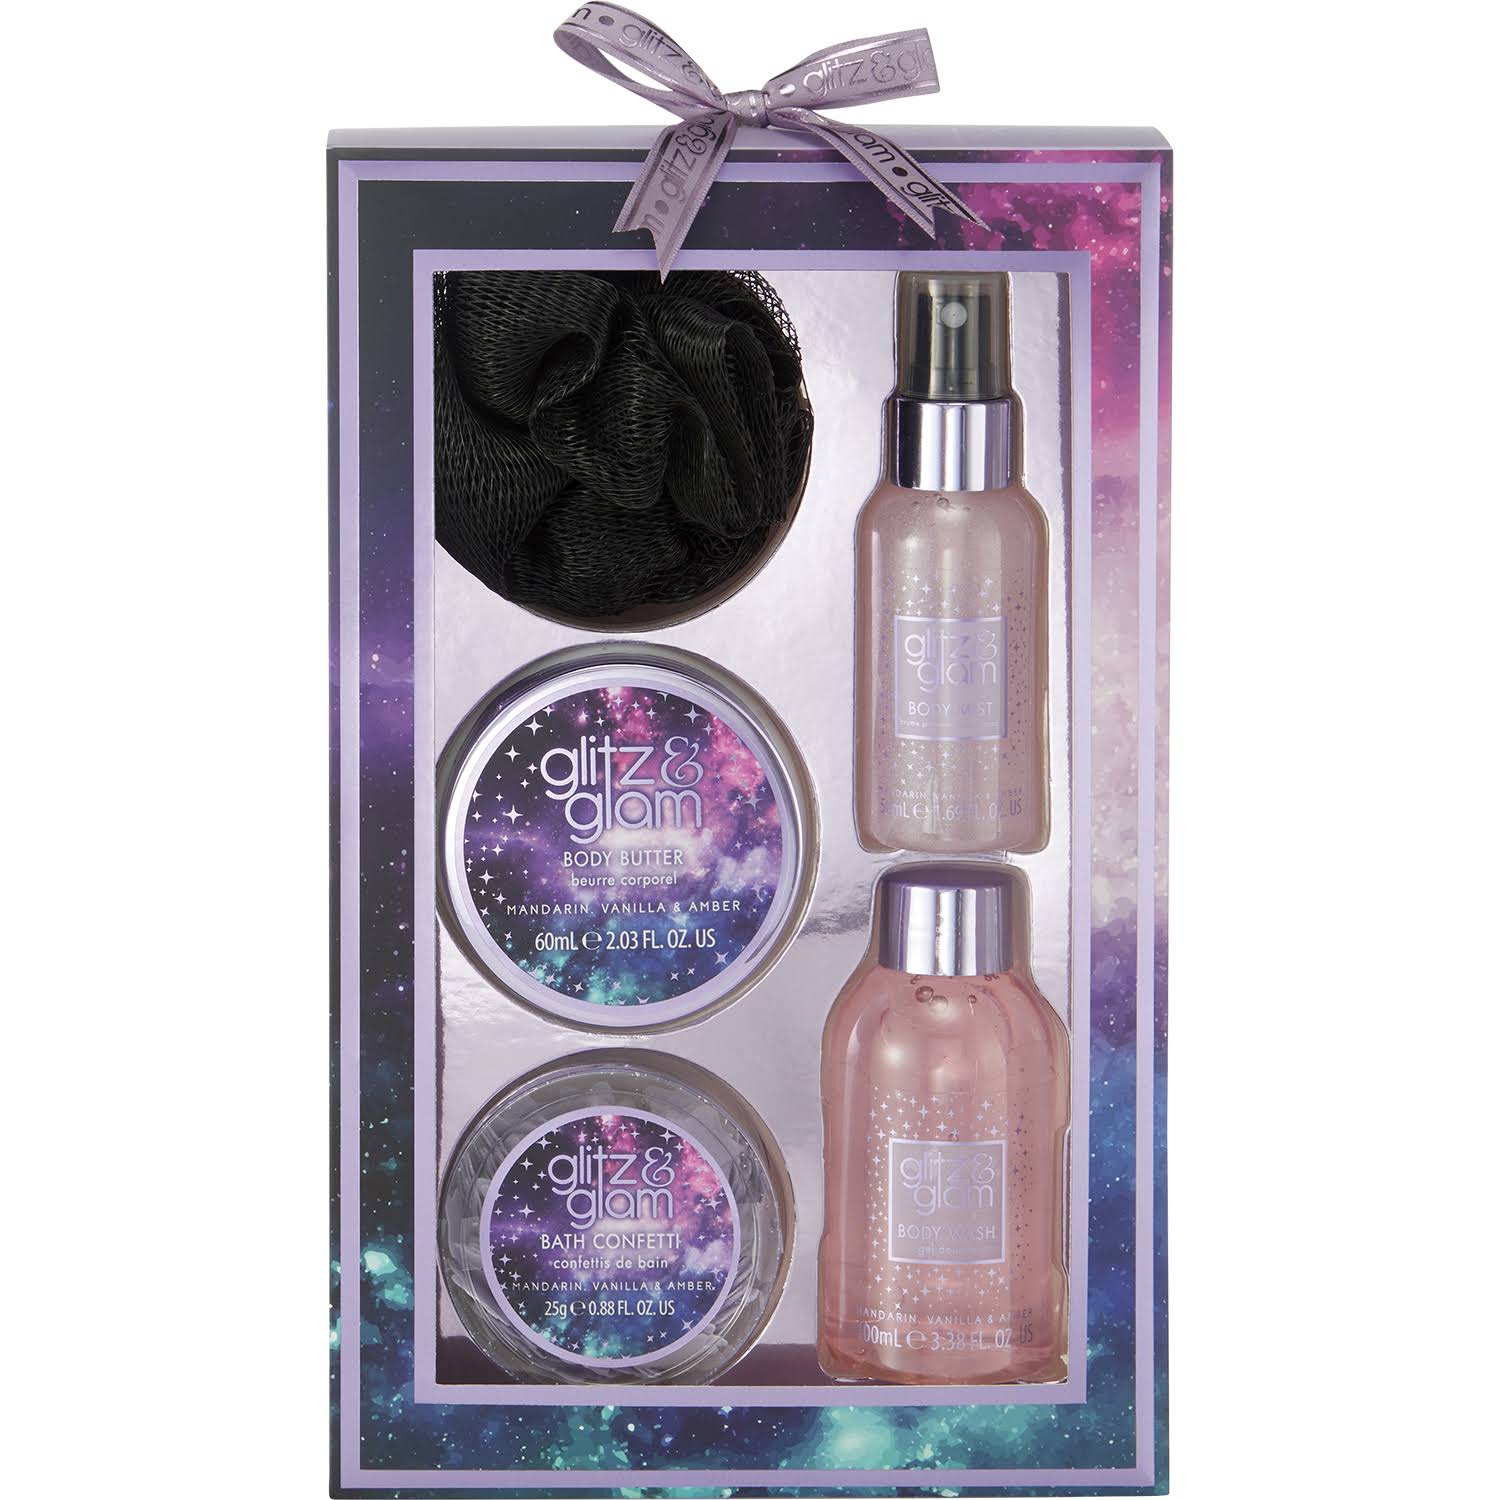 Style & Grace Glitz & Glam Galaxy Supercluster Bath Gift Set 50ml Body Mist, 100ml Body Wash, 25g Bath Confetti, 60ml Body Butter, Shower Flower